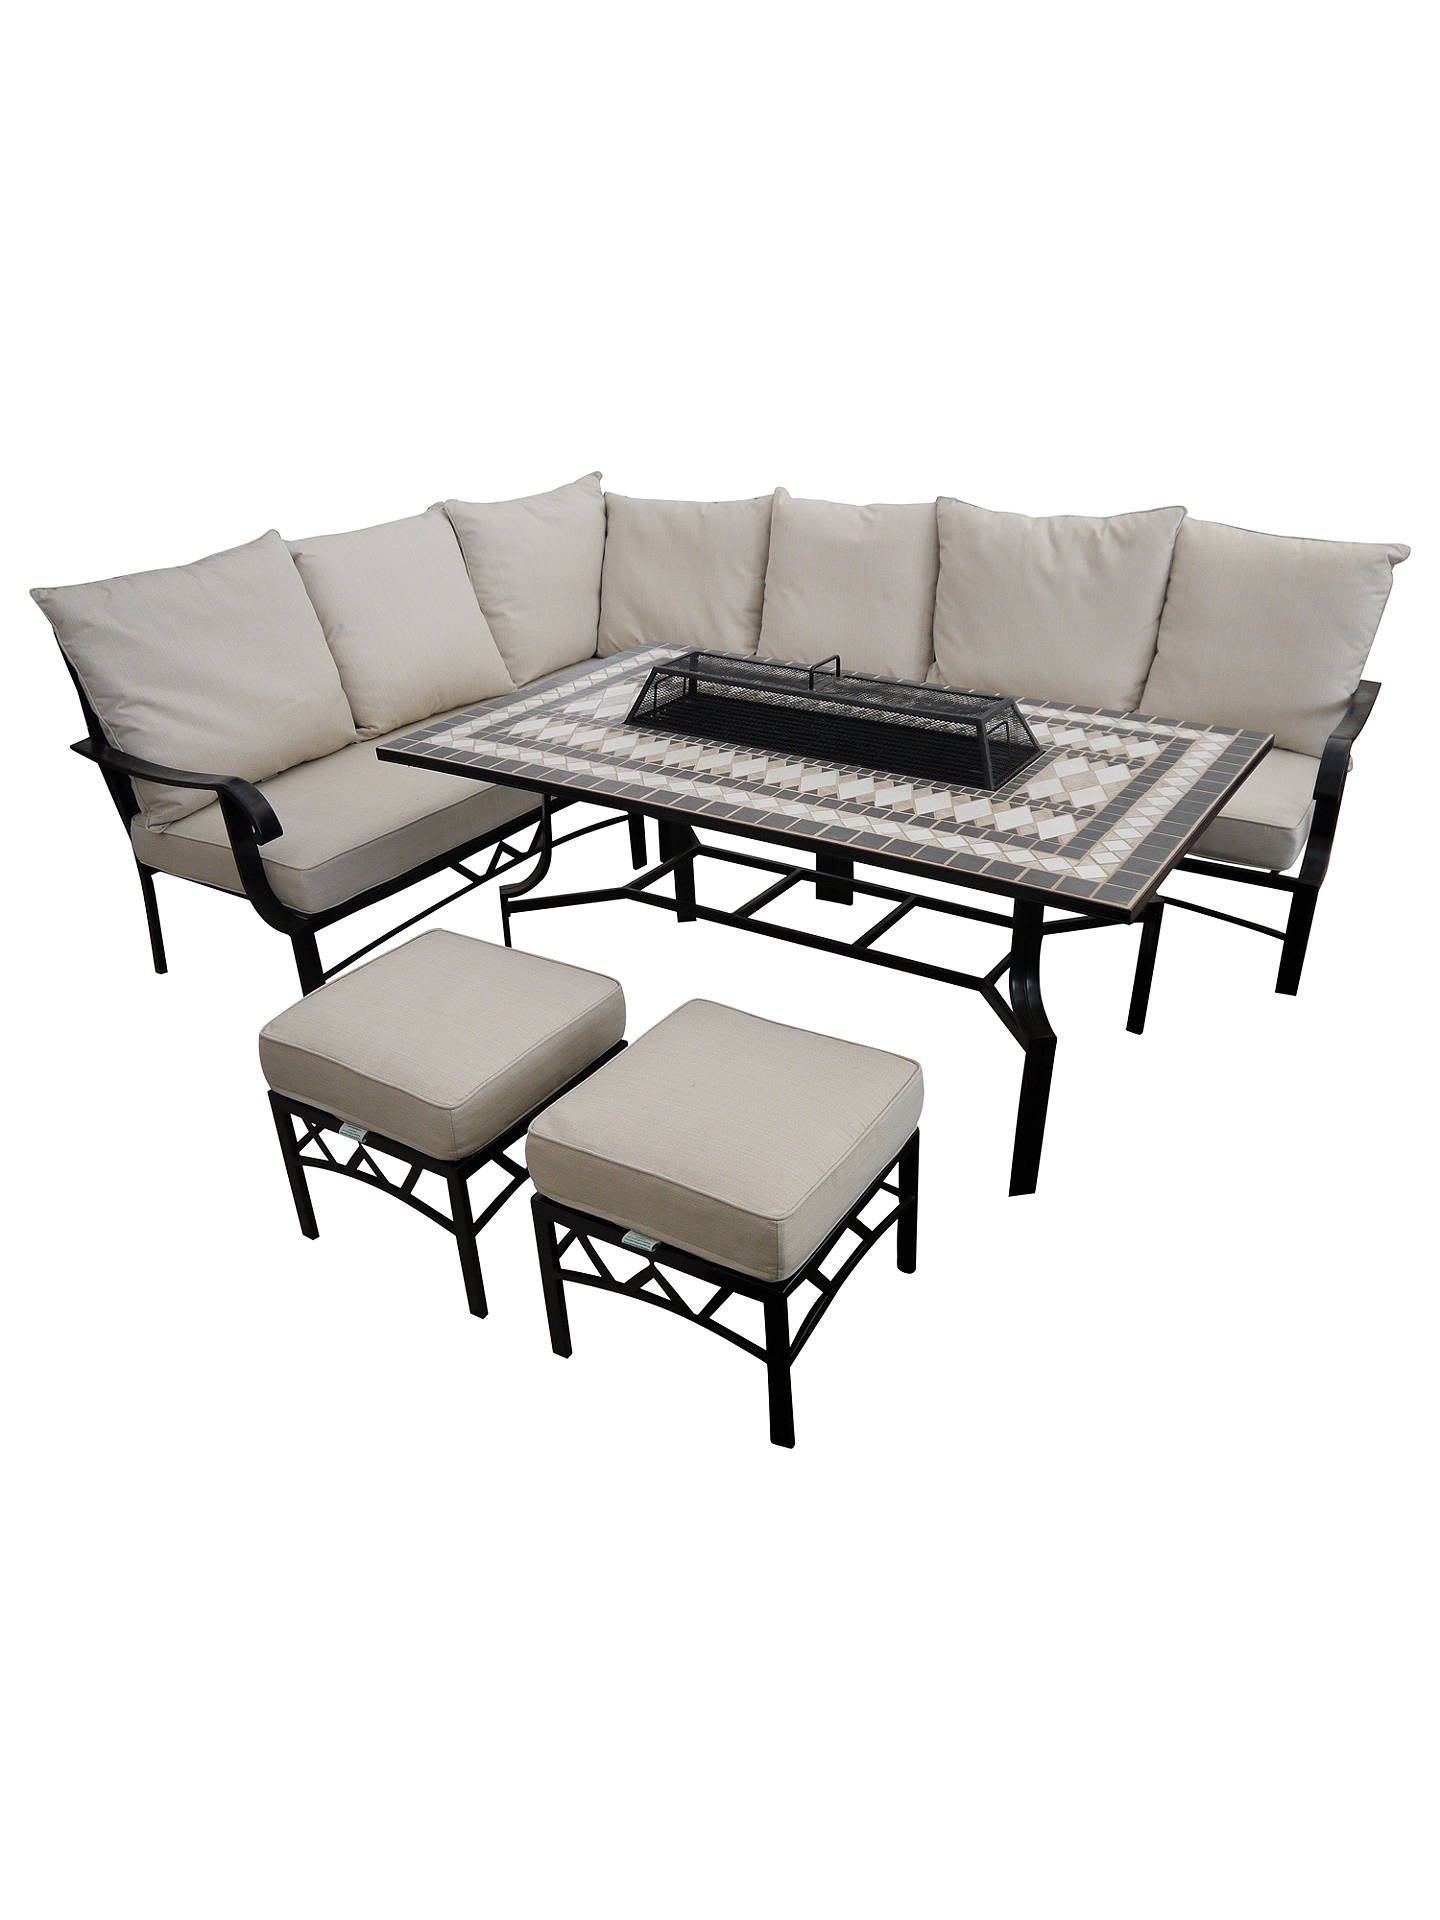 Buylg outdoor casablanca 7 seater garden modular dining table and chairs set with firepit charcoal